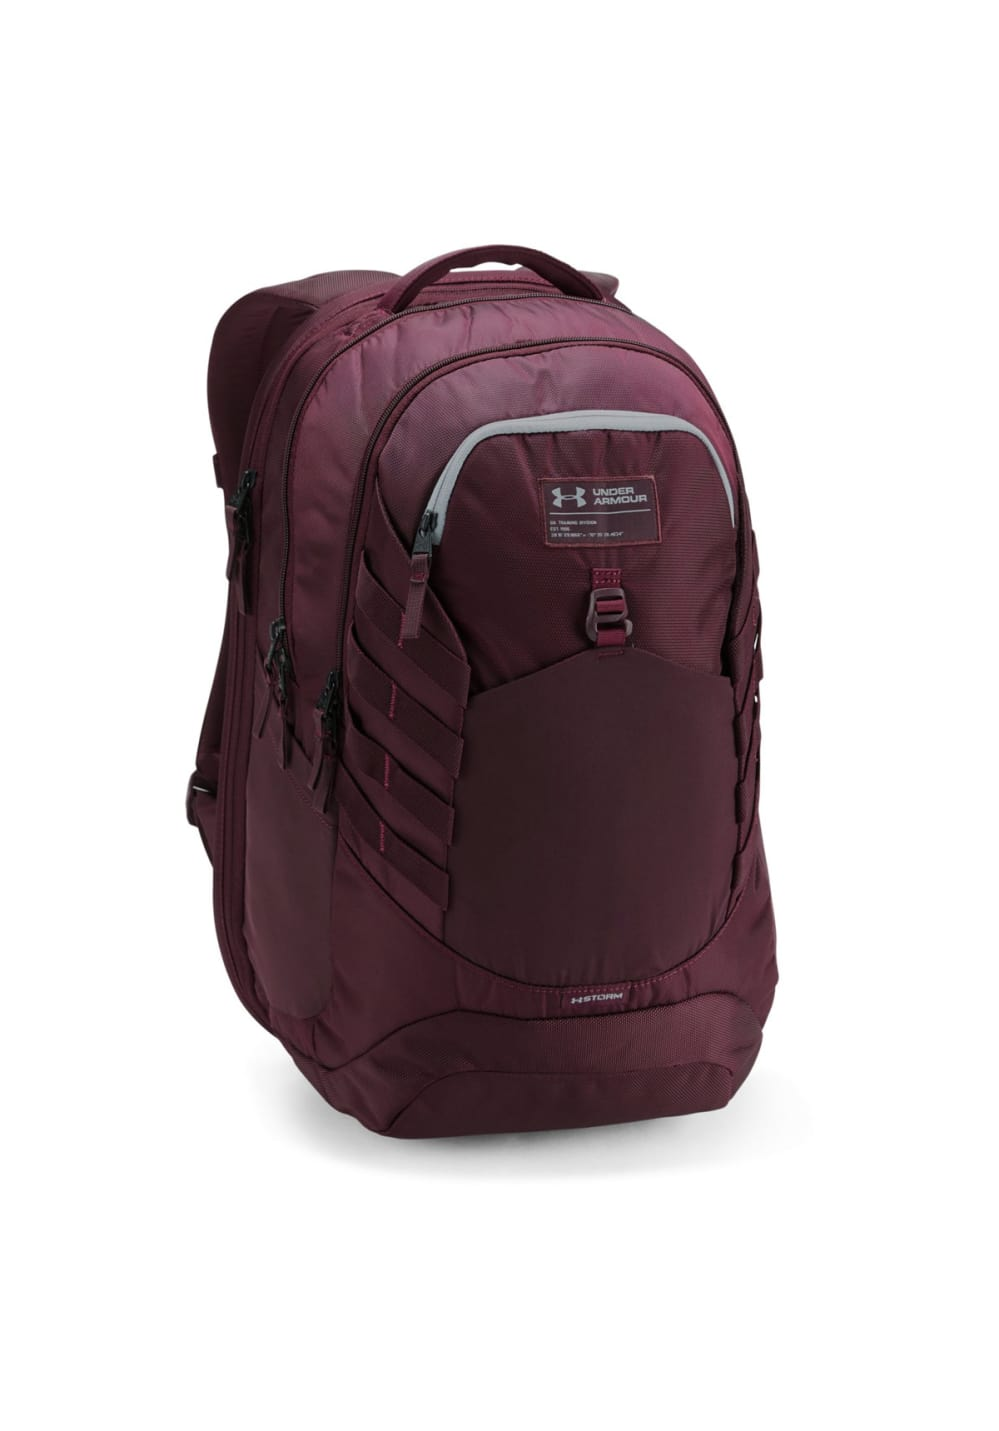 Next. -50%. This product is currently out of stock. Under Armour. Hudson -  Backpacks 7121a9cc915e1